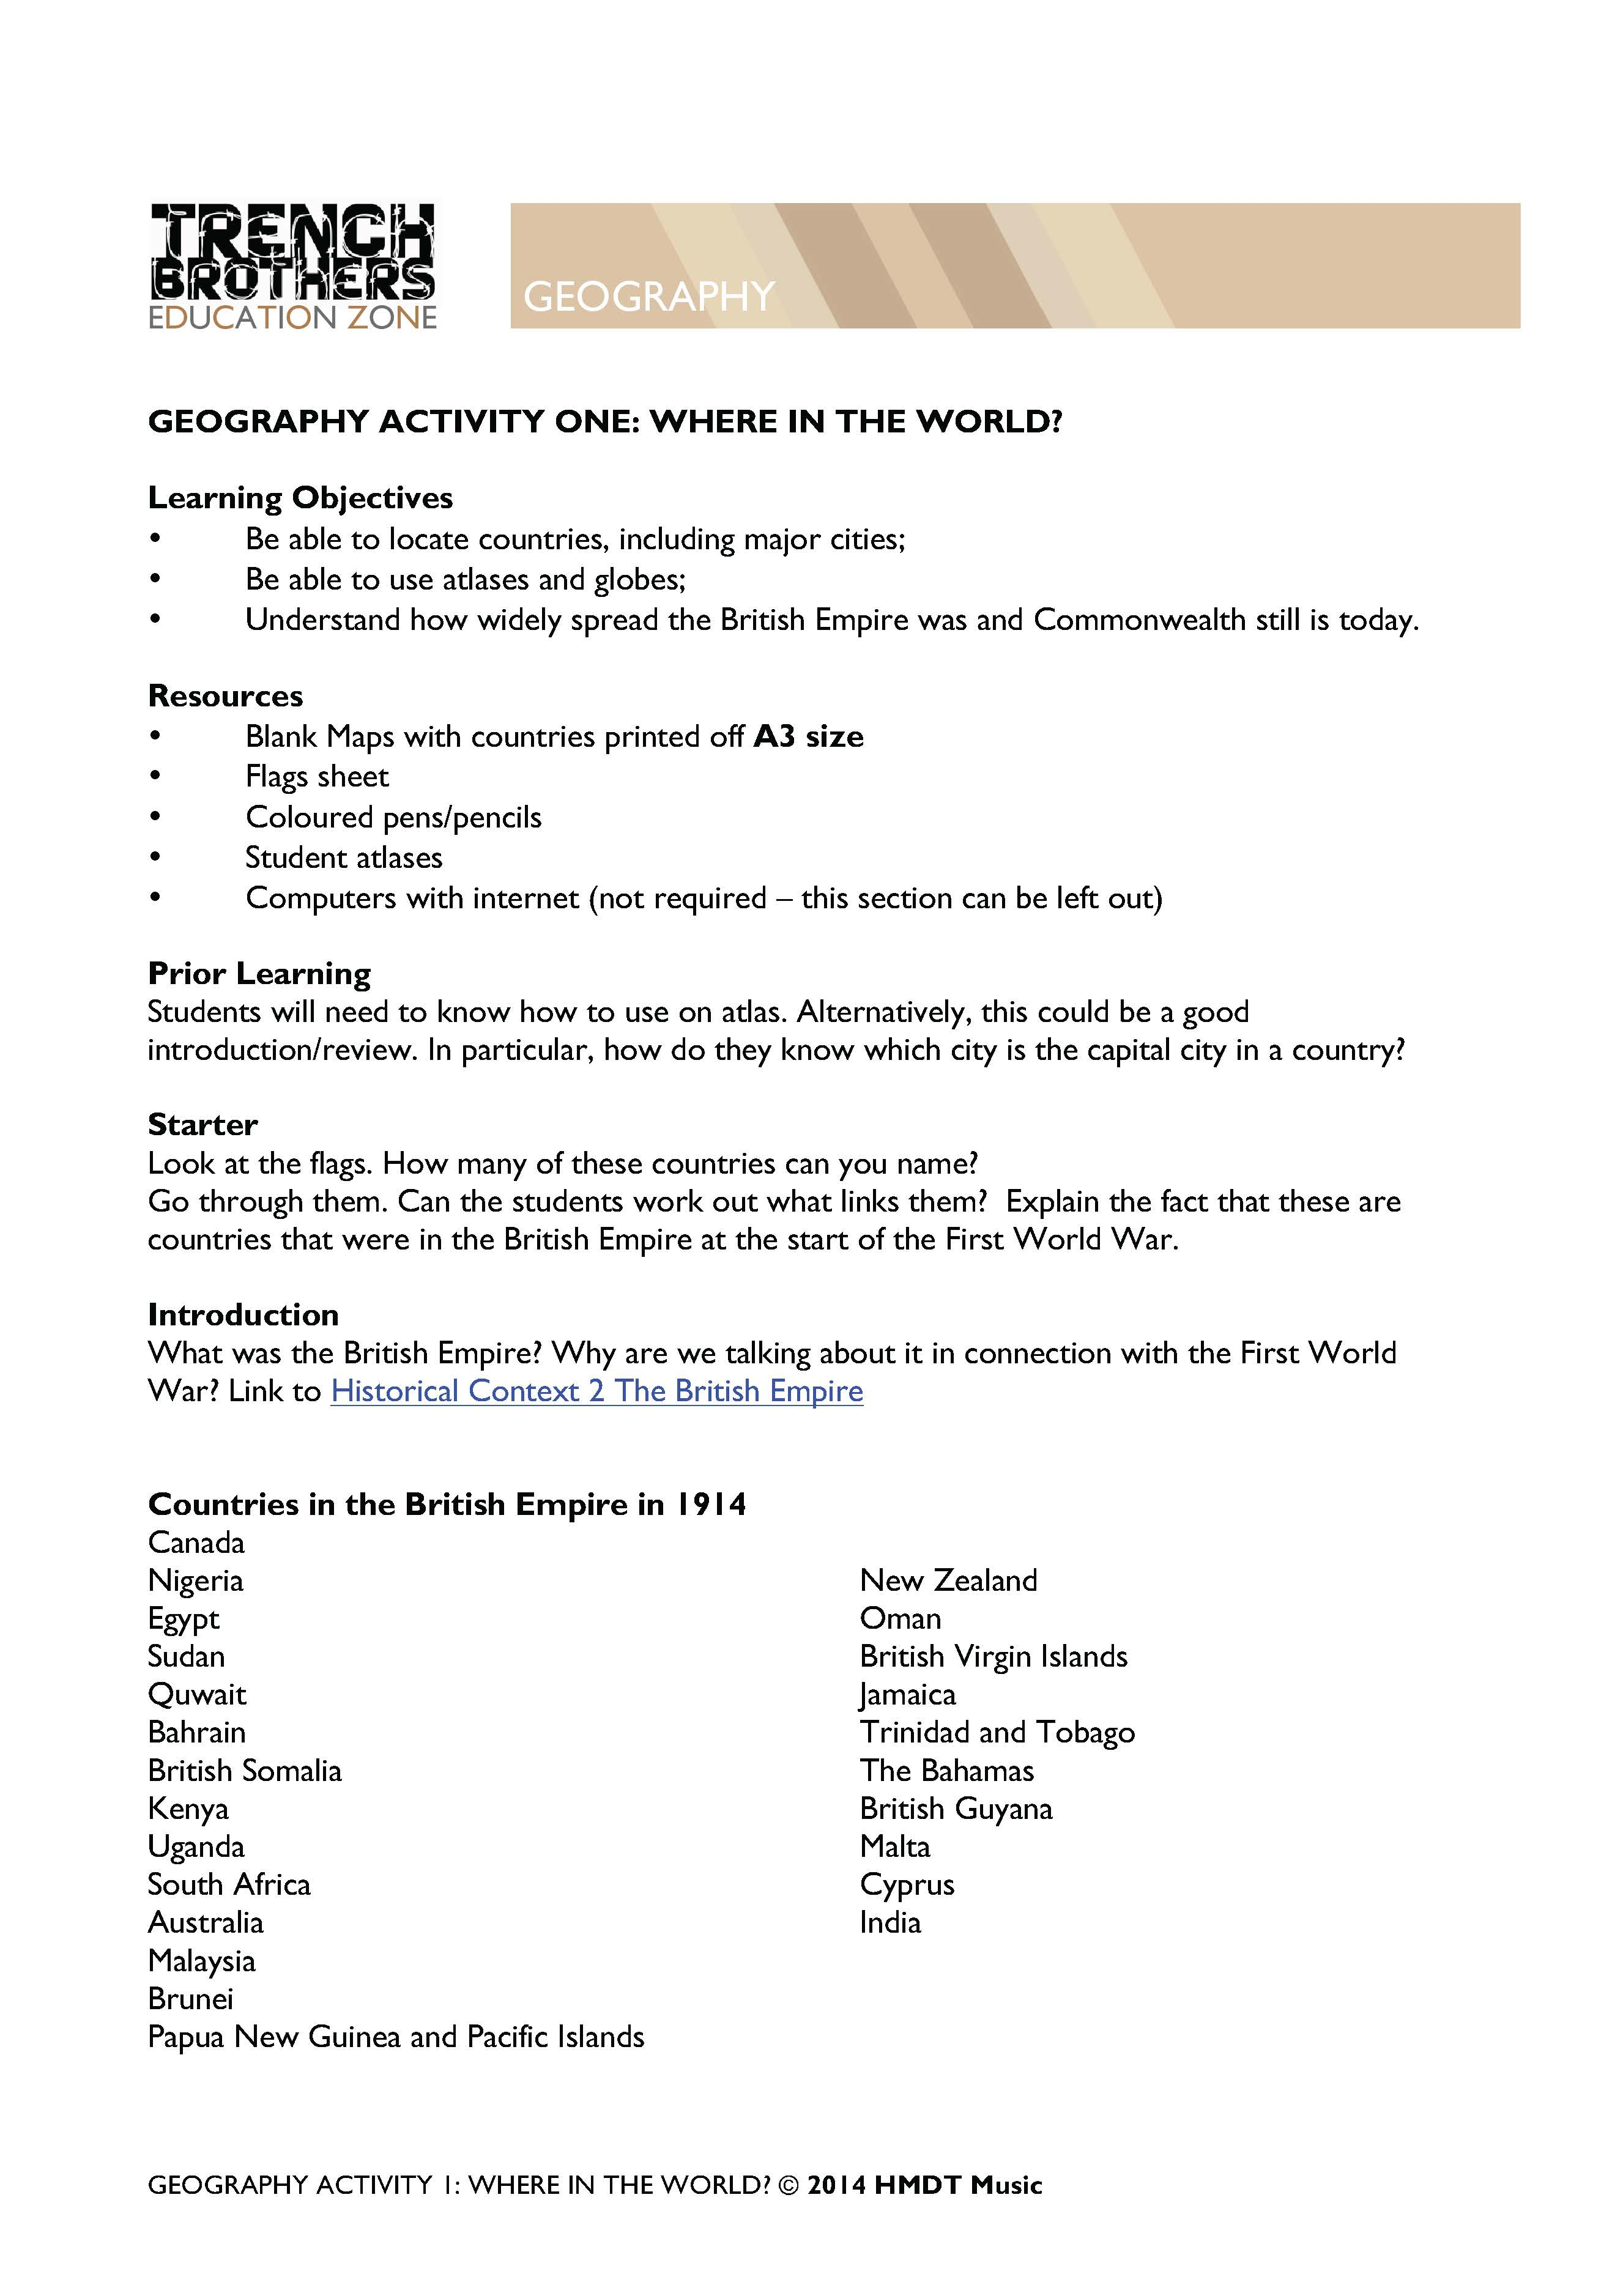 worksheet Types Of Maps Worksheet 6 geography trenchbrothers teaching resources world map worksheet